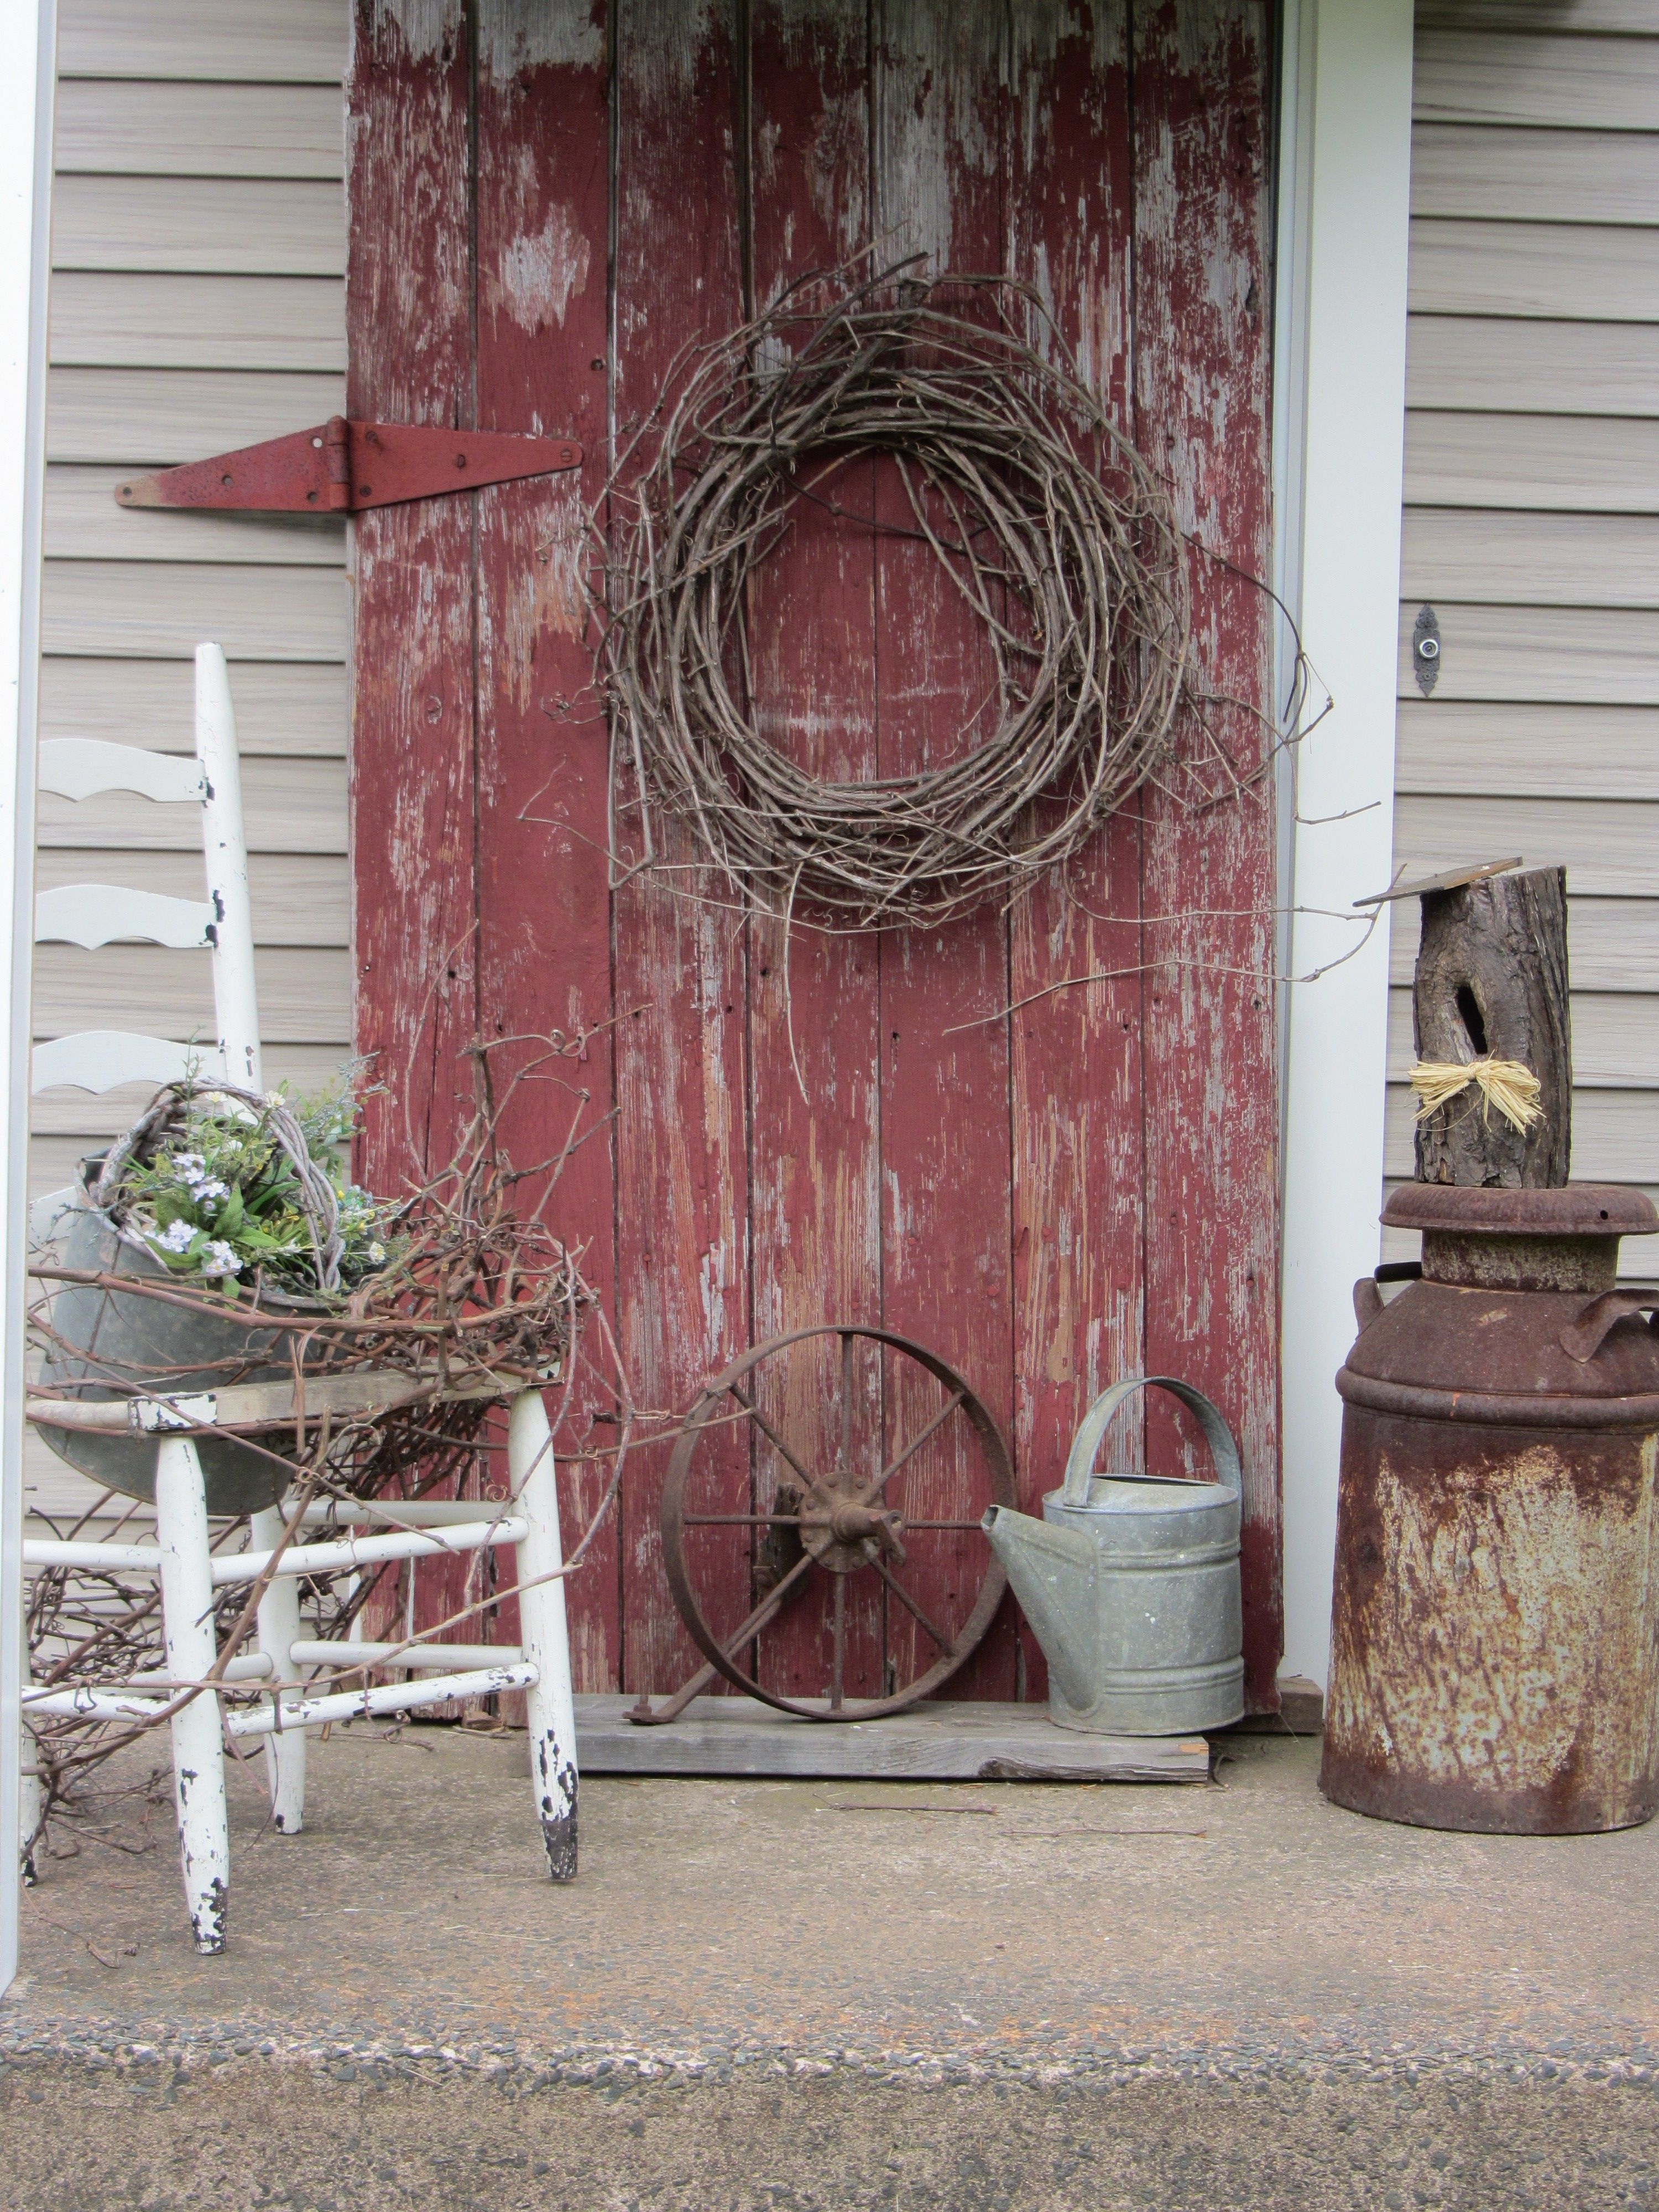 Olde red door ladder back chair milk can simple porch